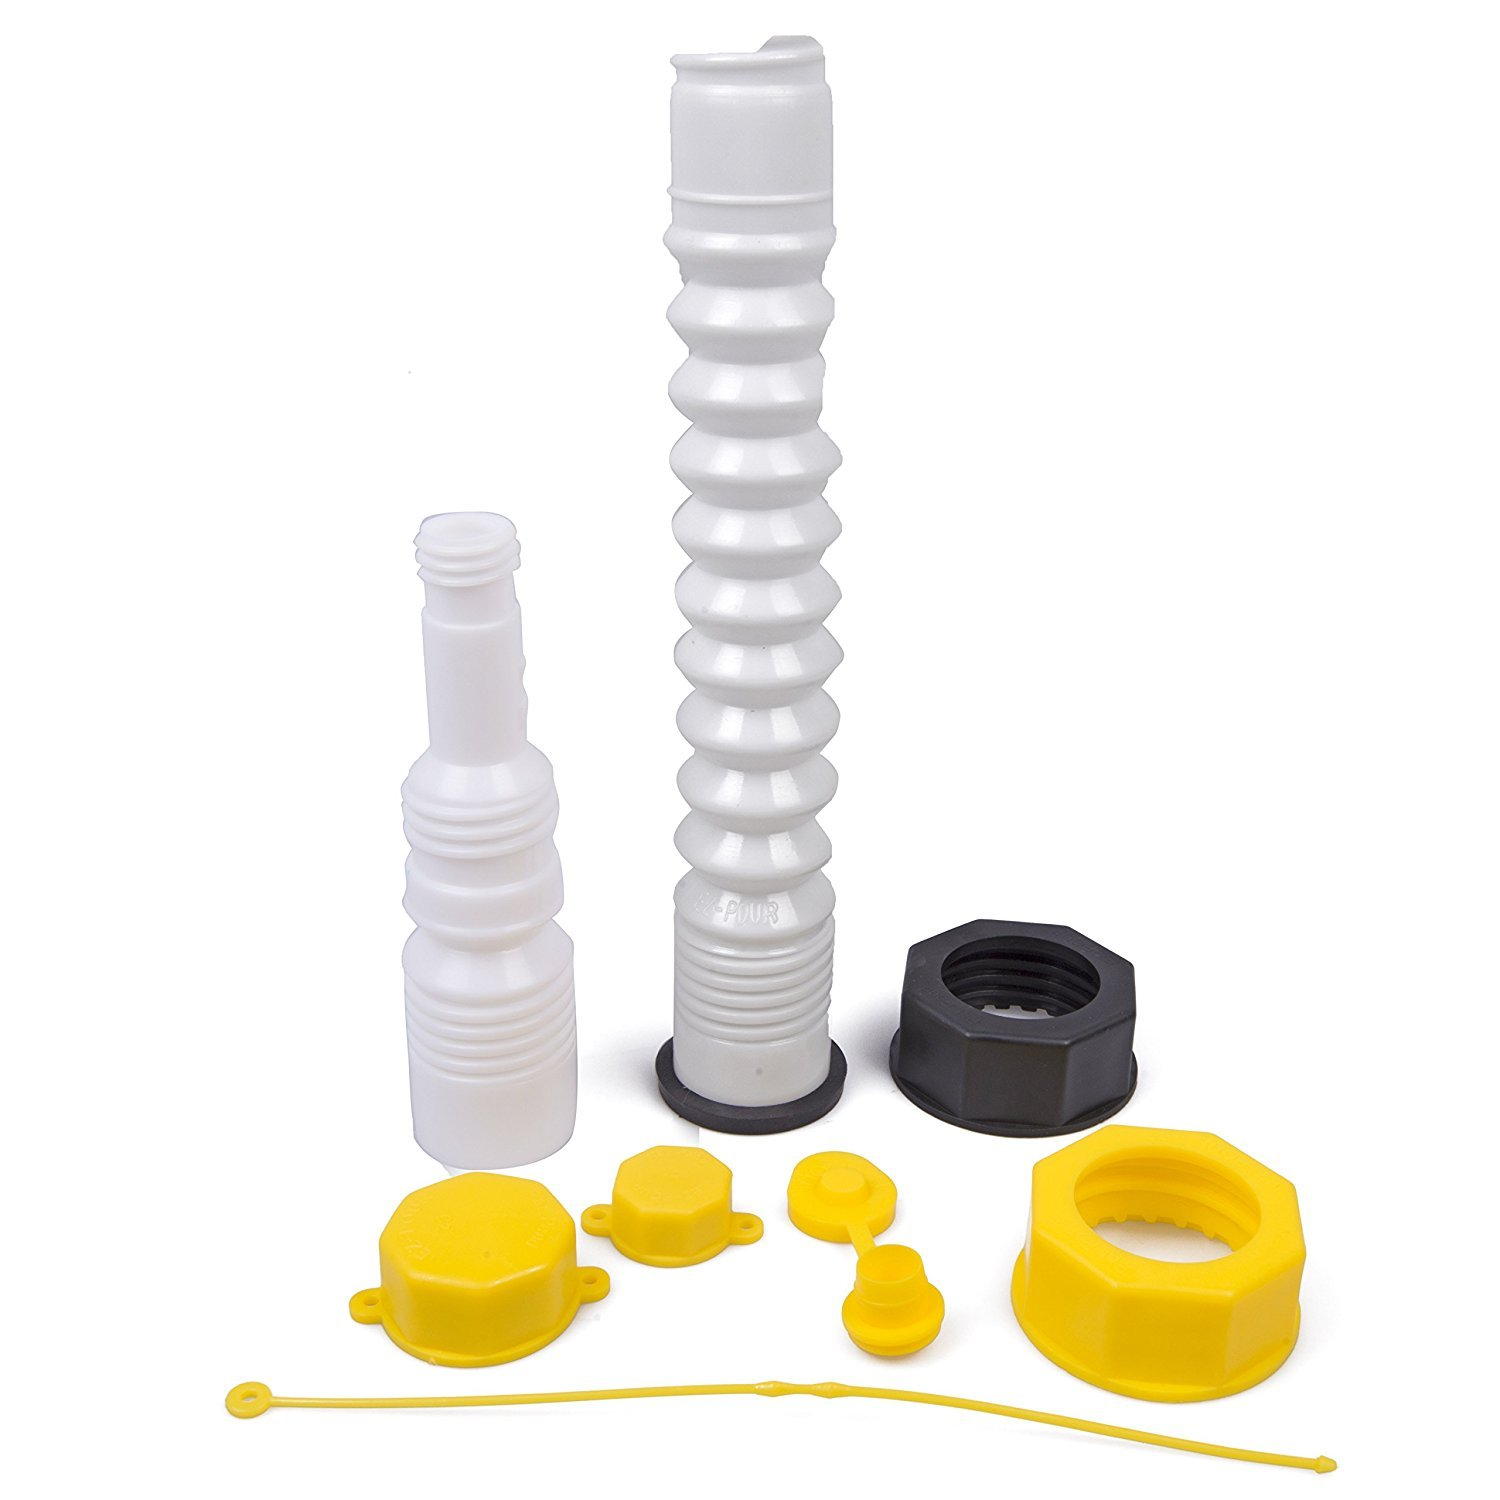 EZ-Pour Gas Can Replacement Spout Kit - Update Your Old Can Or Water Jug - 2 Spouts, 7 Piece Kit